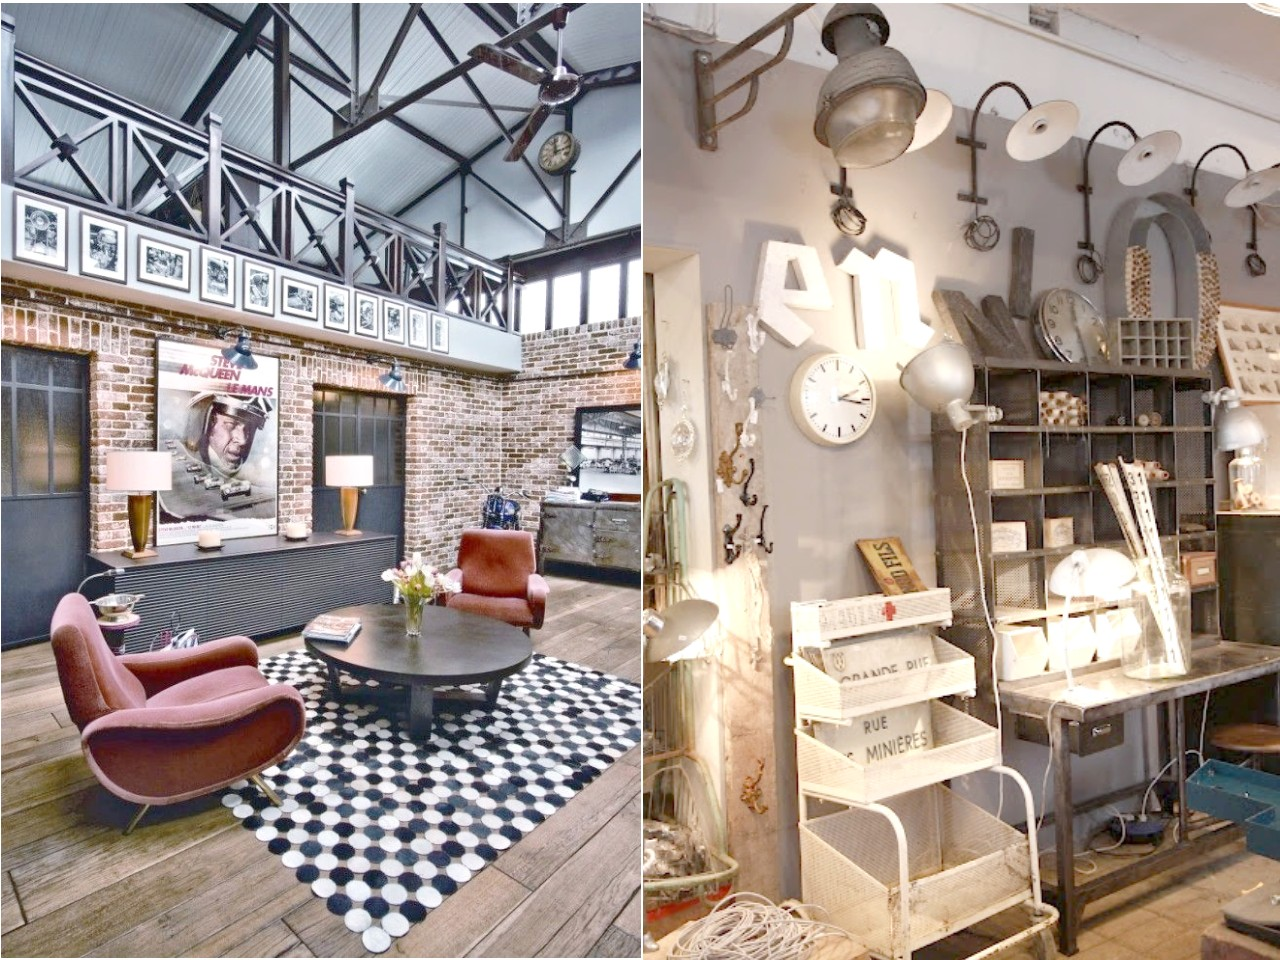 Decoracion retro industrial - Decoracion industrial vintage ...